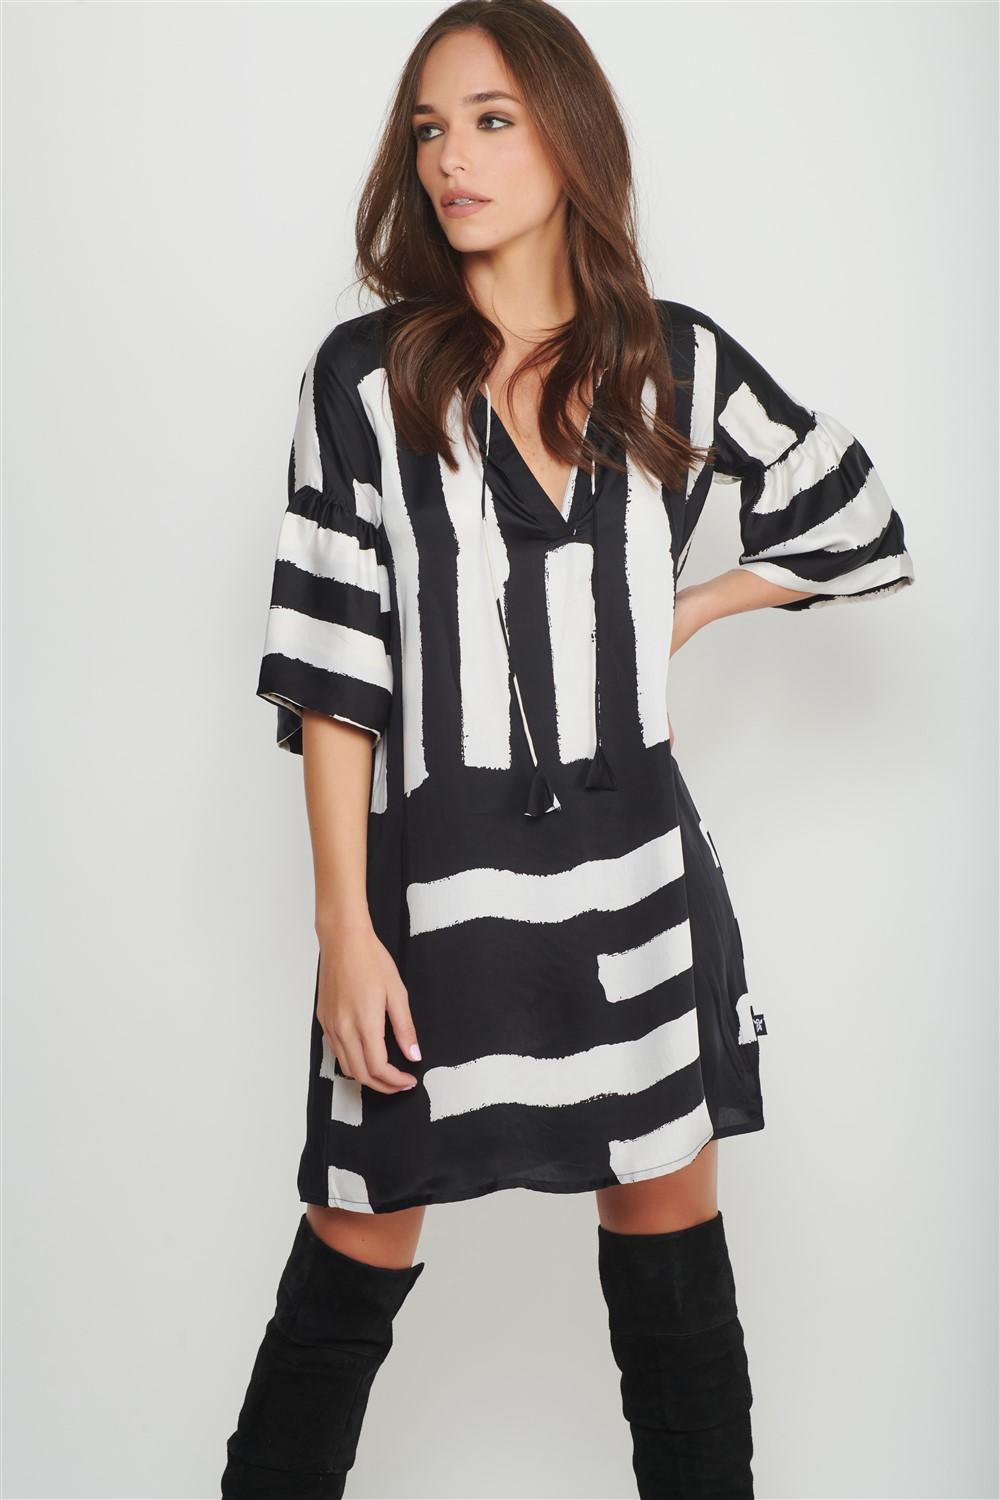 black brush stroke dress women